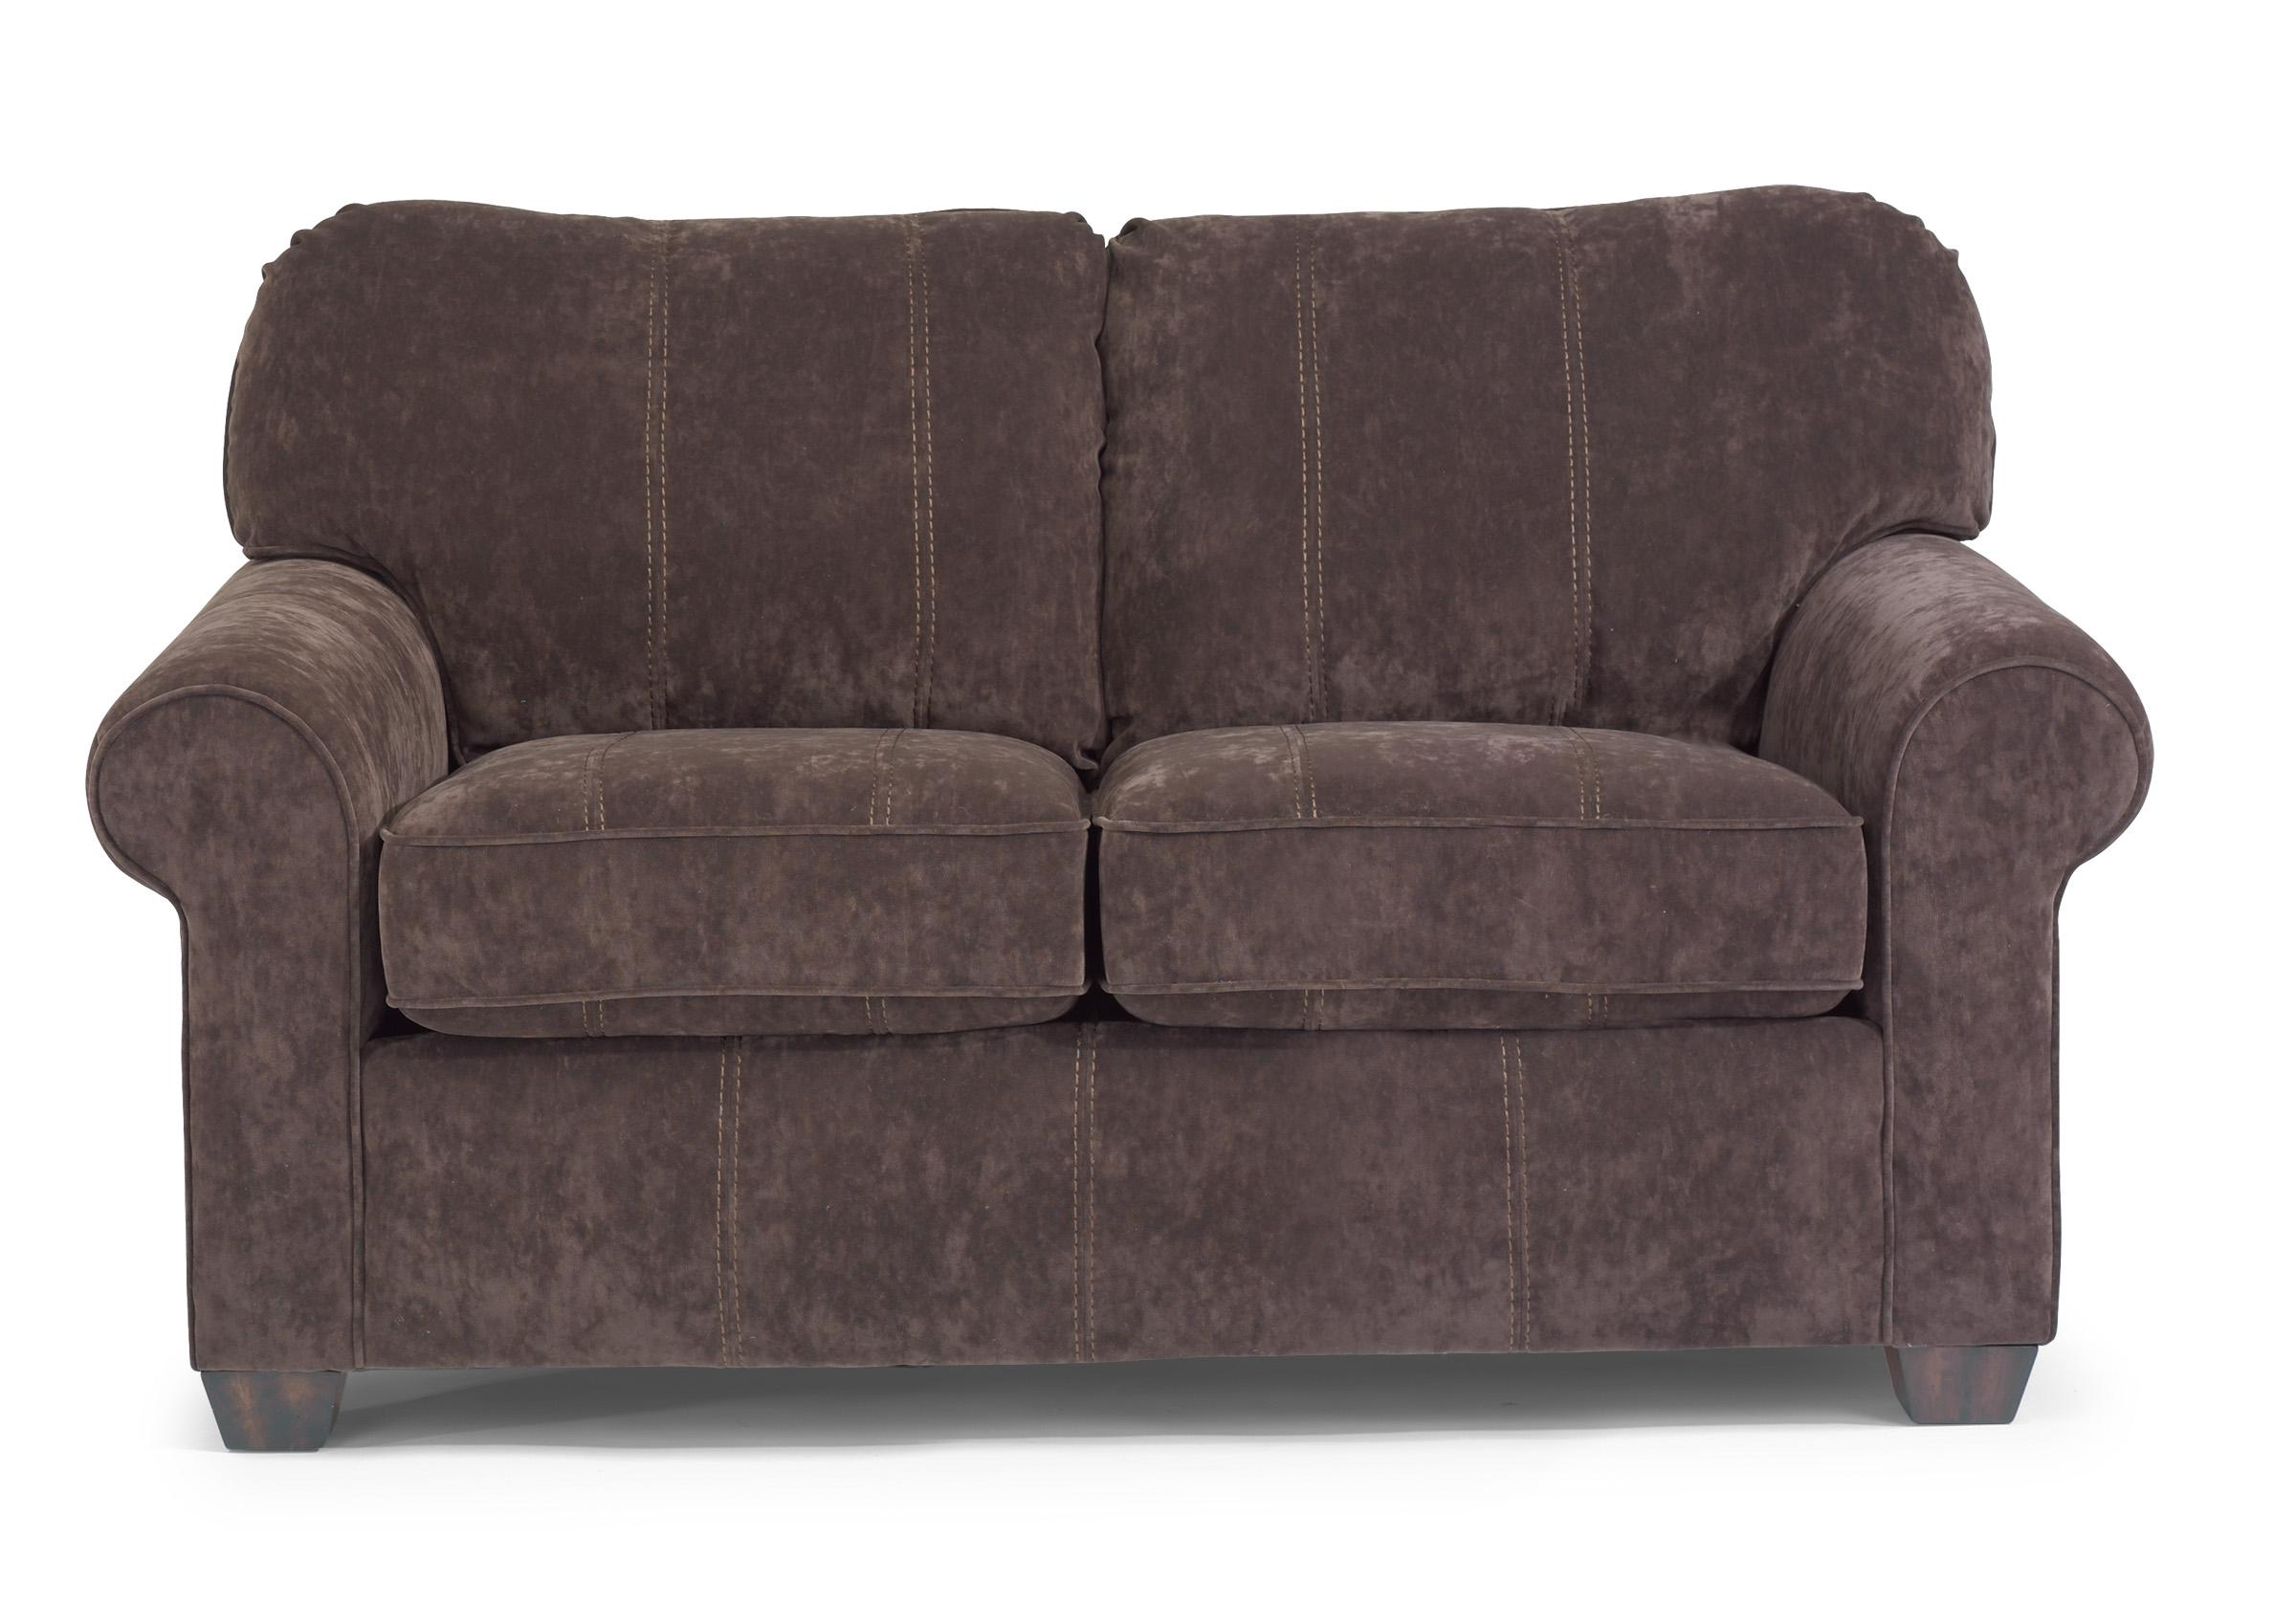 Flexsteel Thornton Upholstered Love Seat with Rolled Arms Dunk